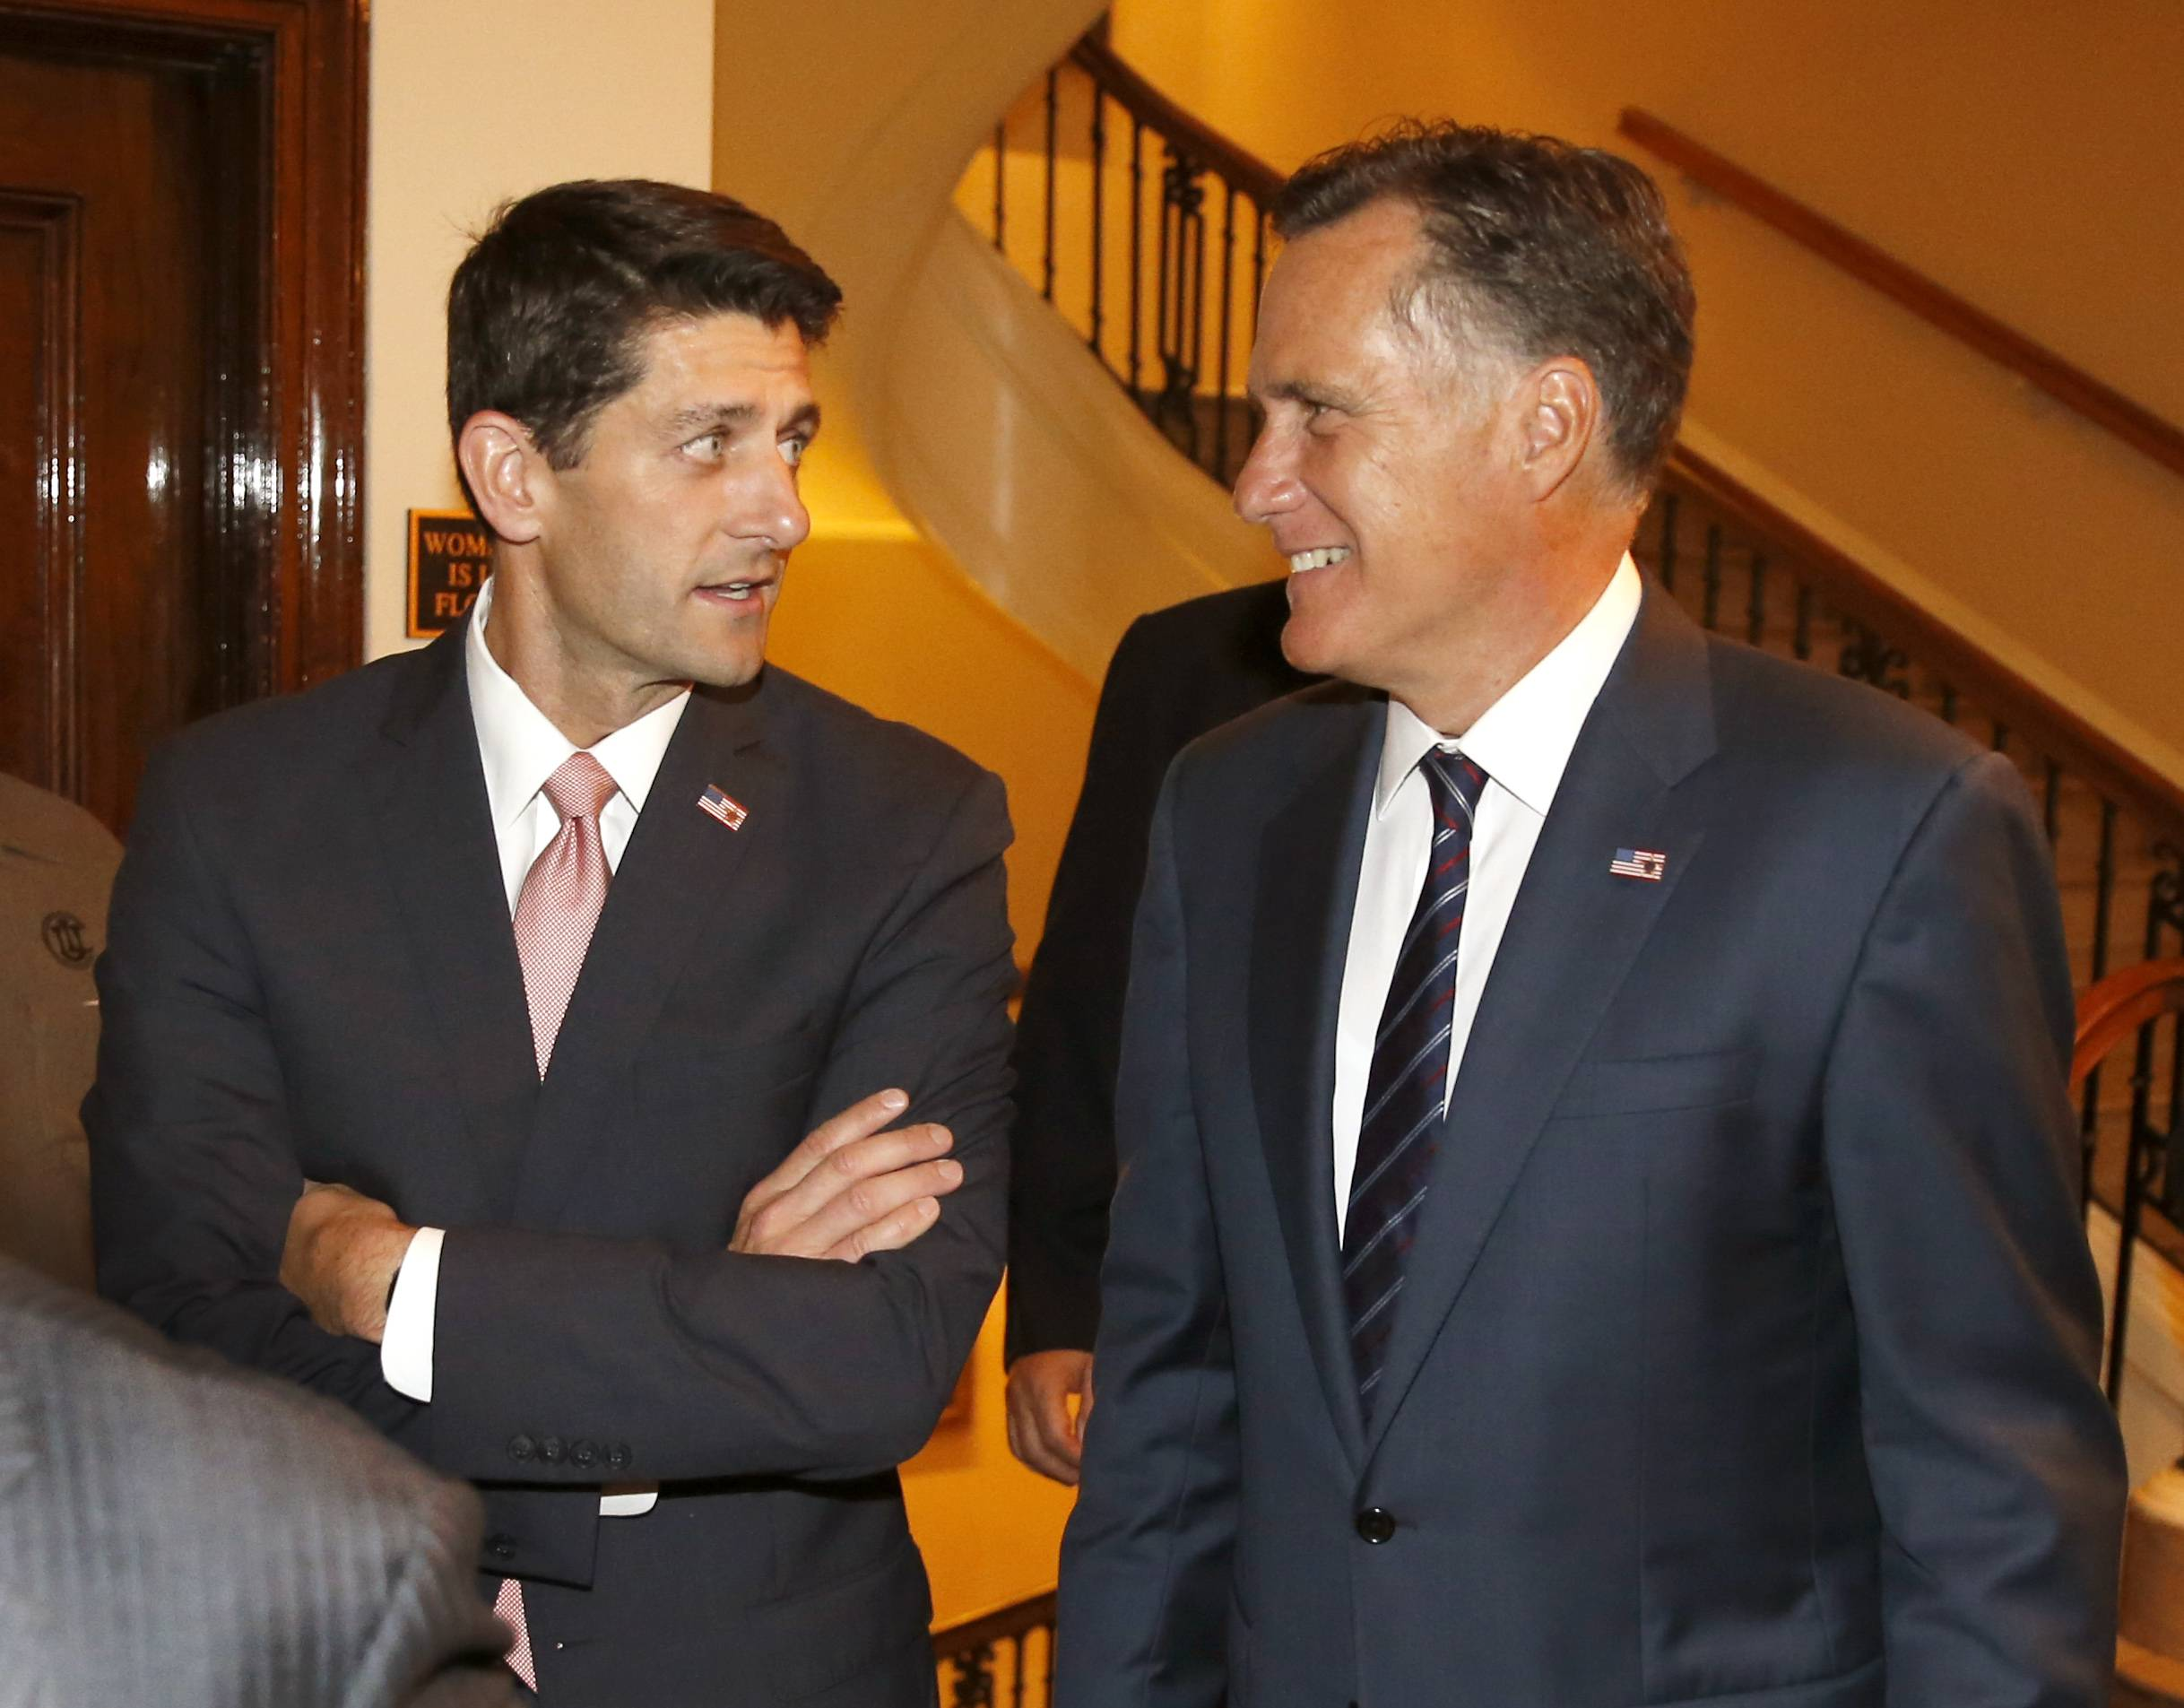 Massachusetts Gov. Mitt Romney, right and his former vice presidential running mate, U.S. Rep. Paul Ryan, arrive for a dinner Thursday at the Union League Club in Chicago.